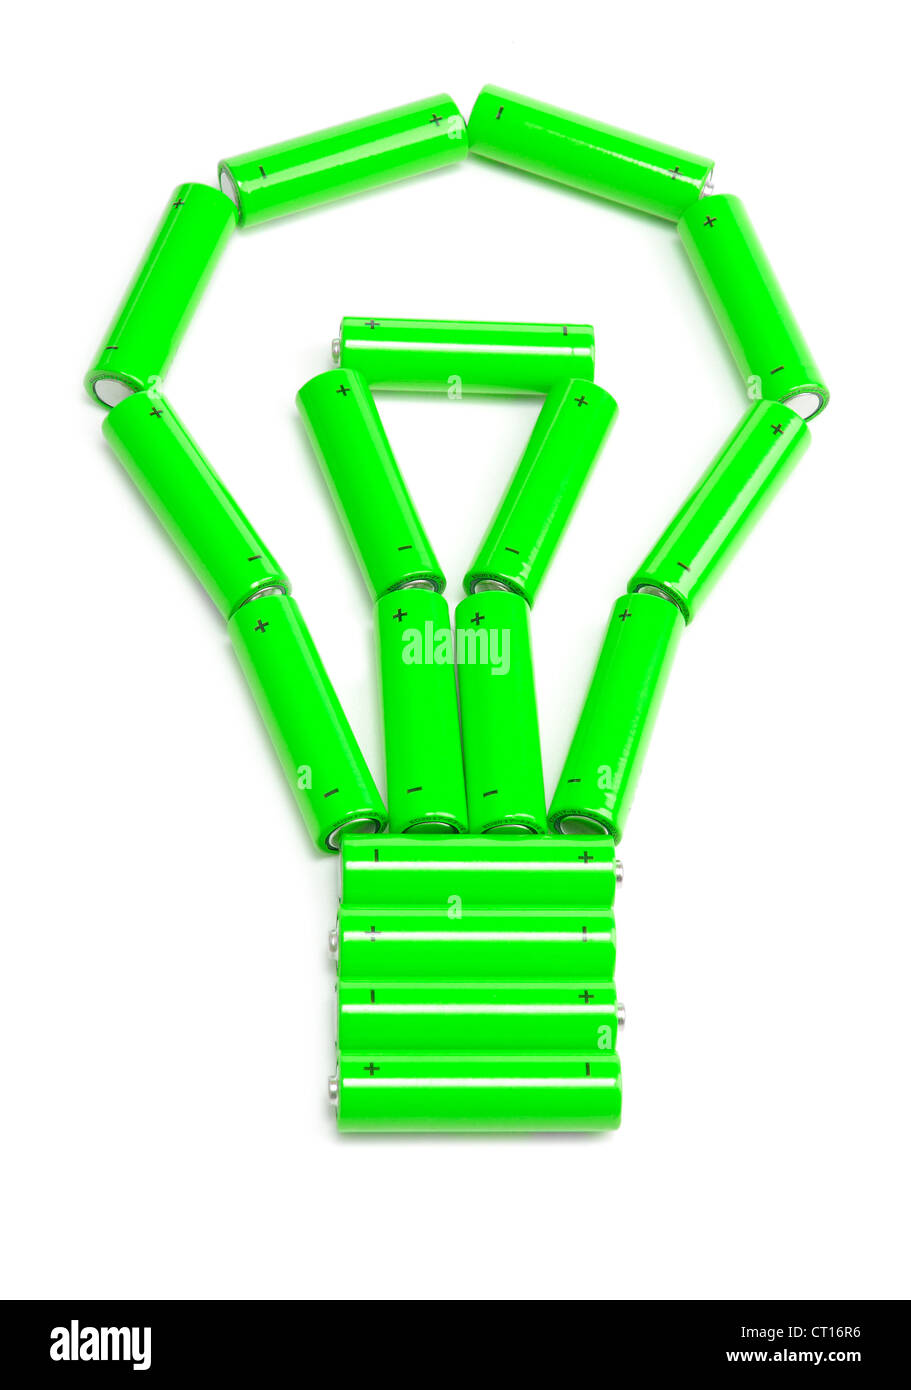 green batteries arranged in a light bulb - Stock Image